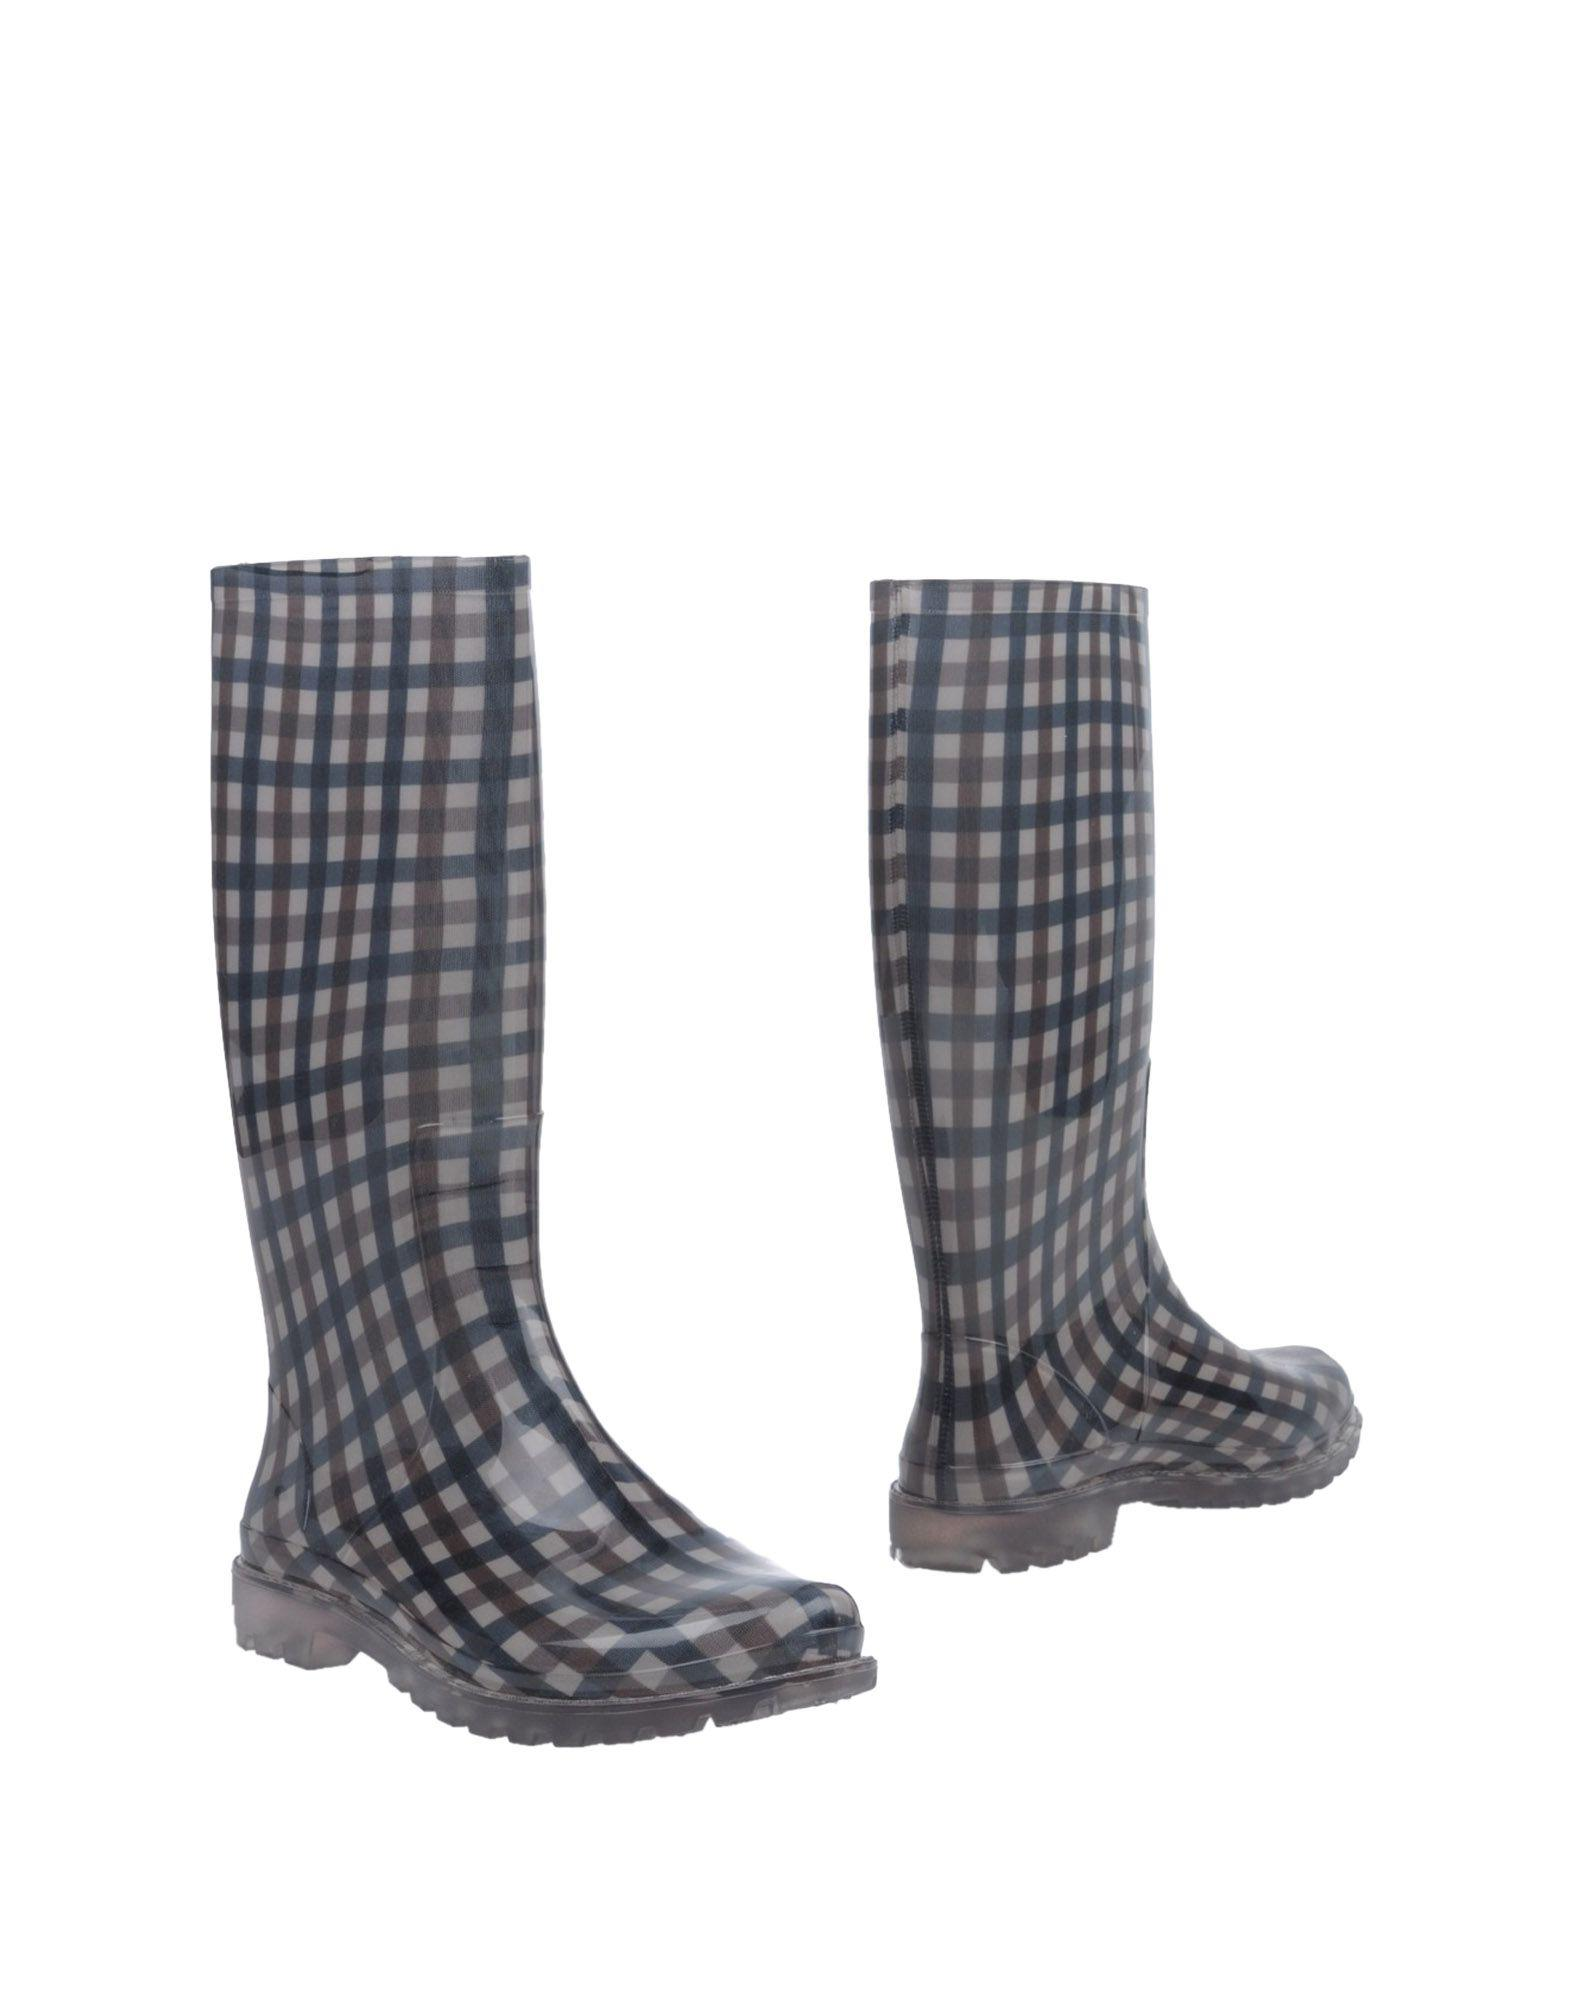 outlet where can you find AQUASCUTUM Boots pay with paypal sale online GsHUoy9nM